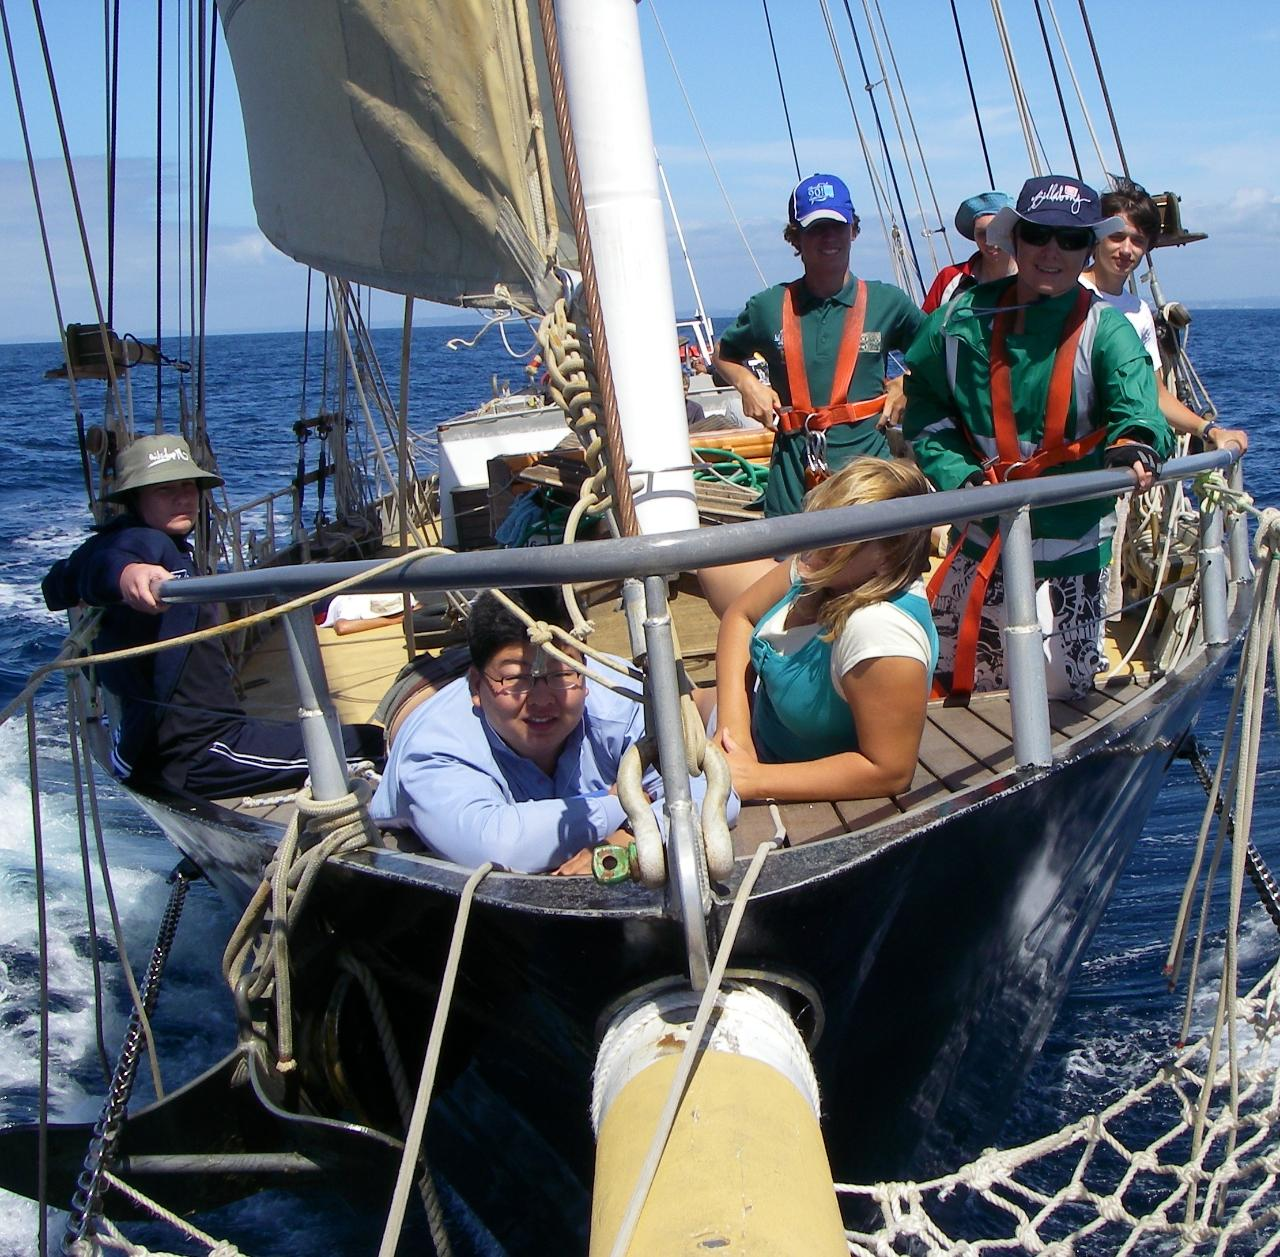 Youth Challenge Day Sail - Wednesday 1st July